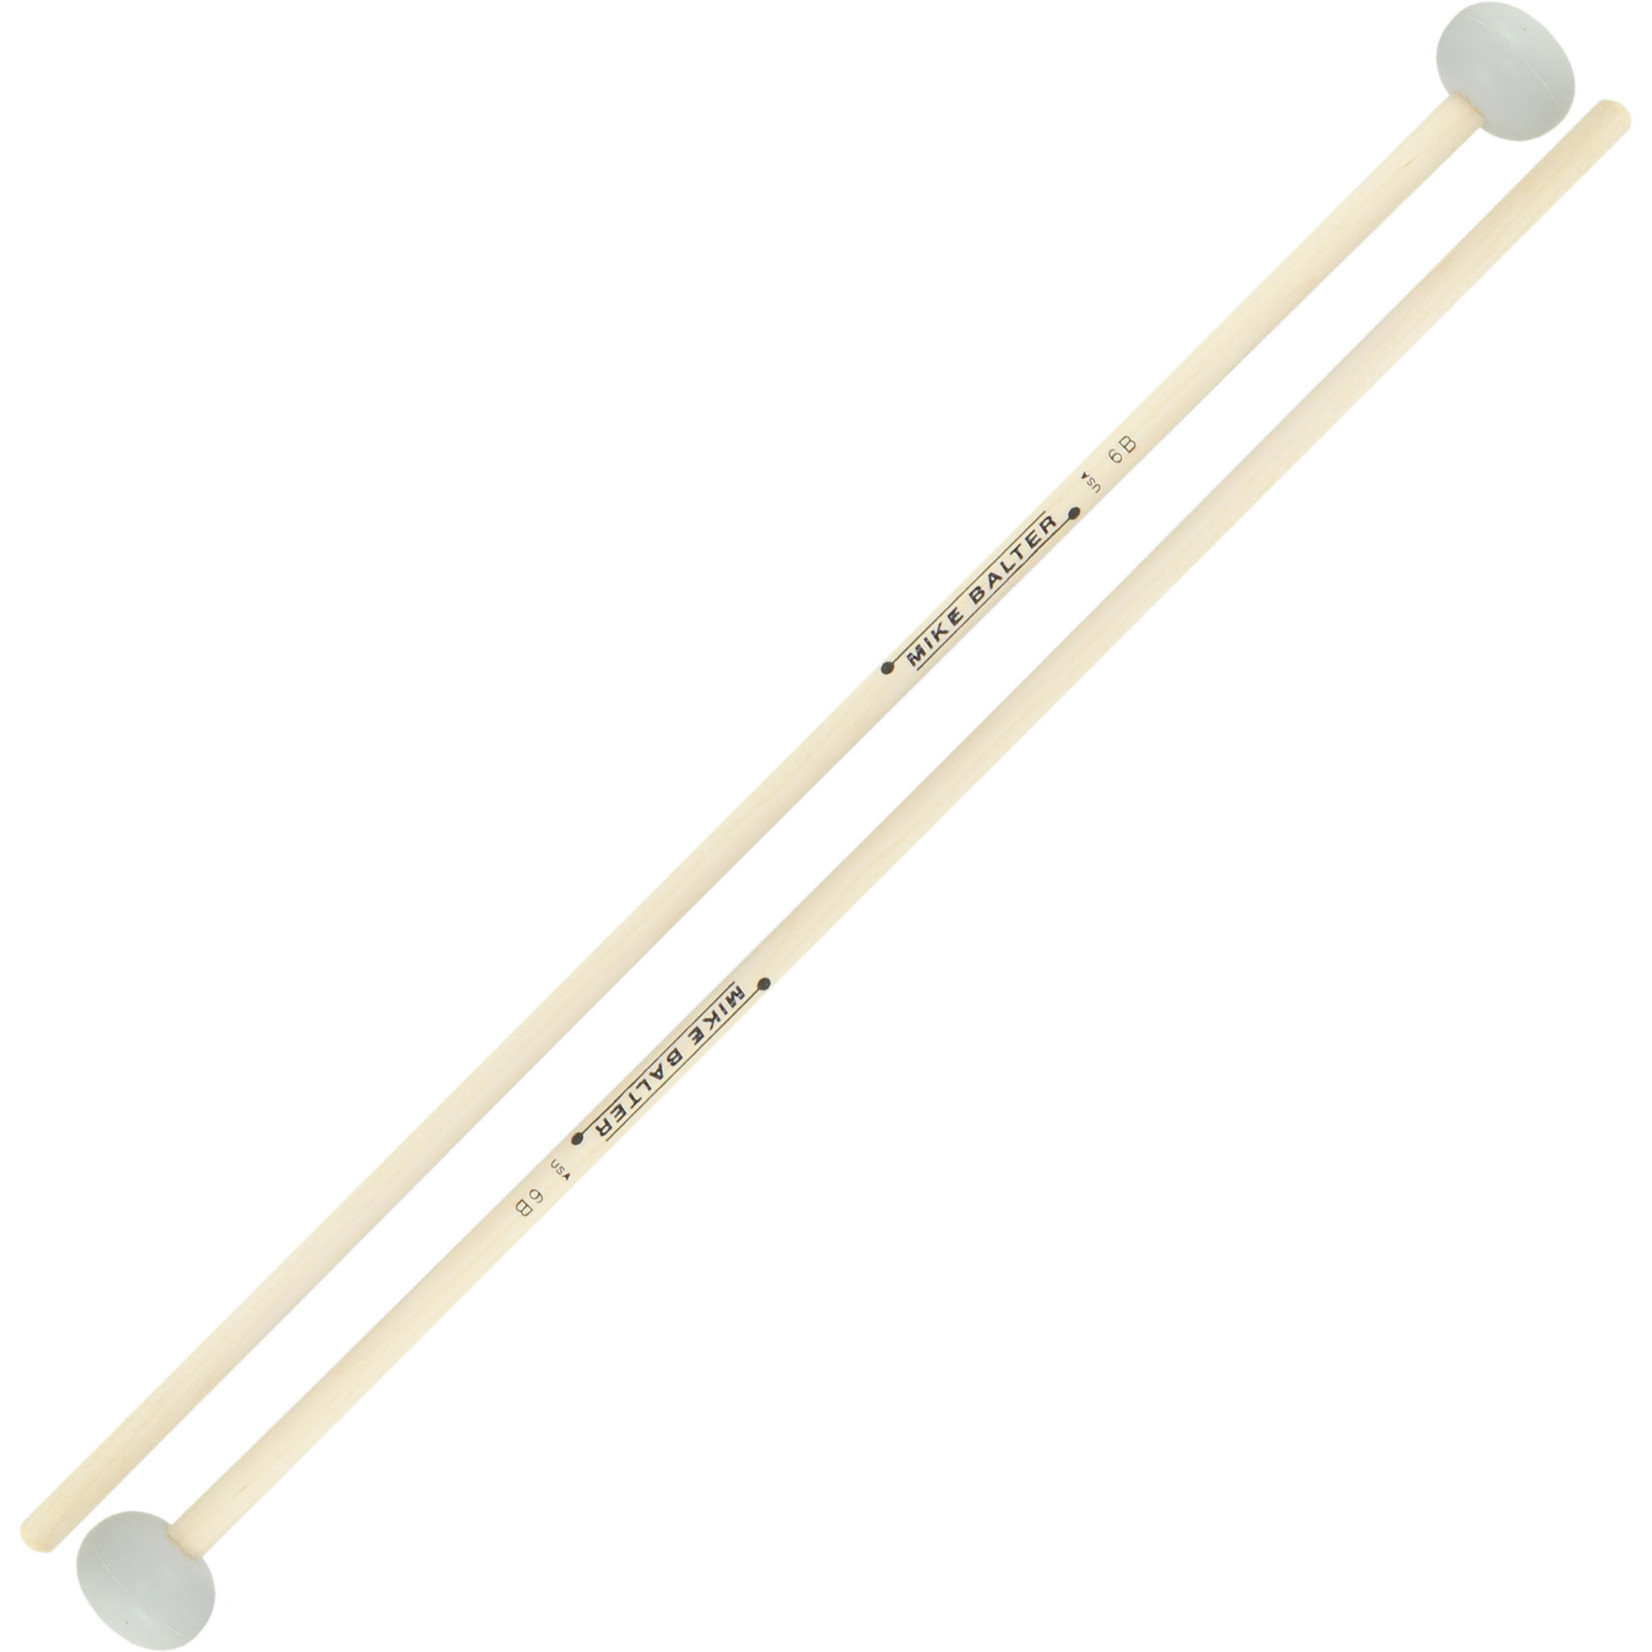 Mike Balter MIKE BALTER 6B HARD RUBBER MALLETS